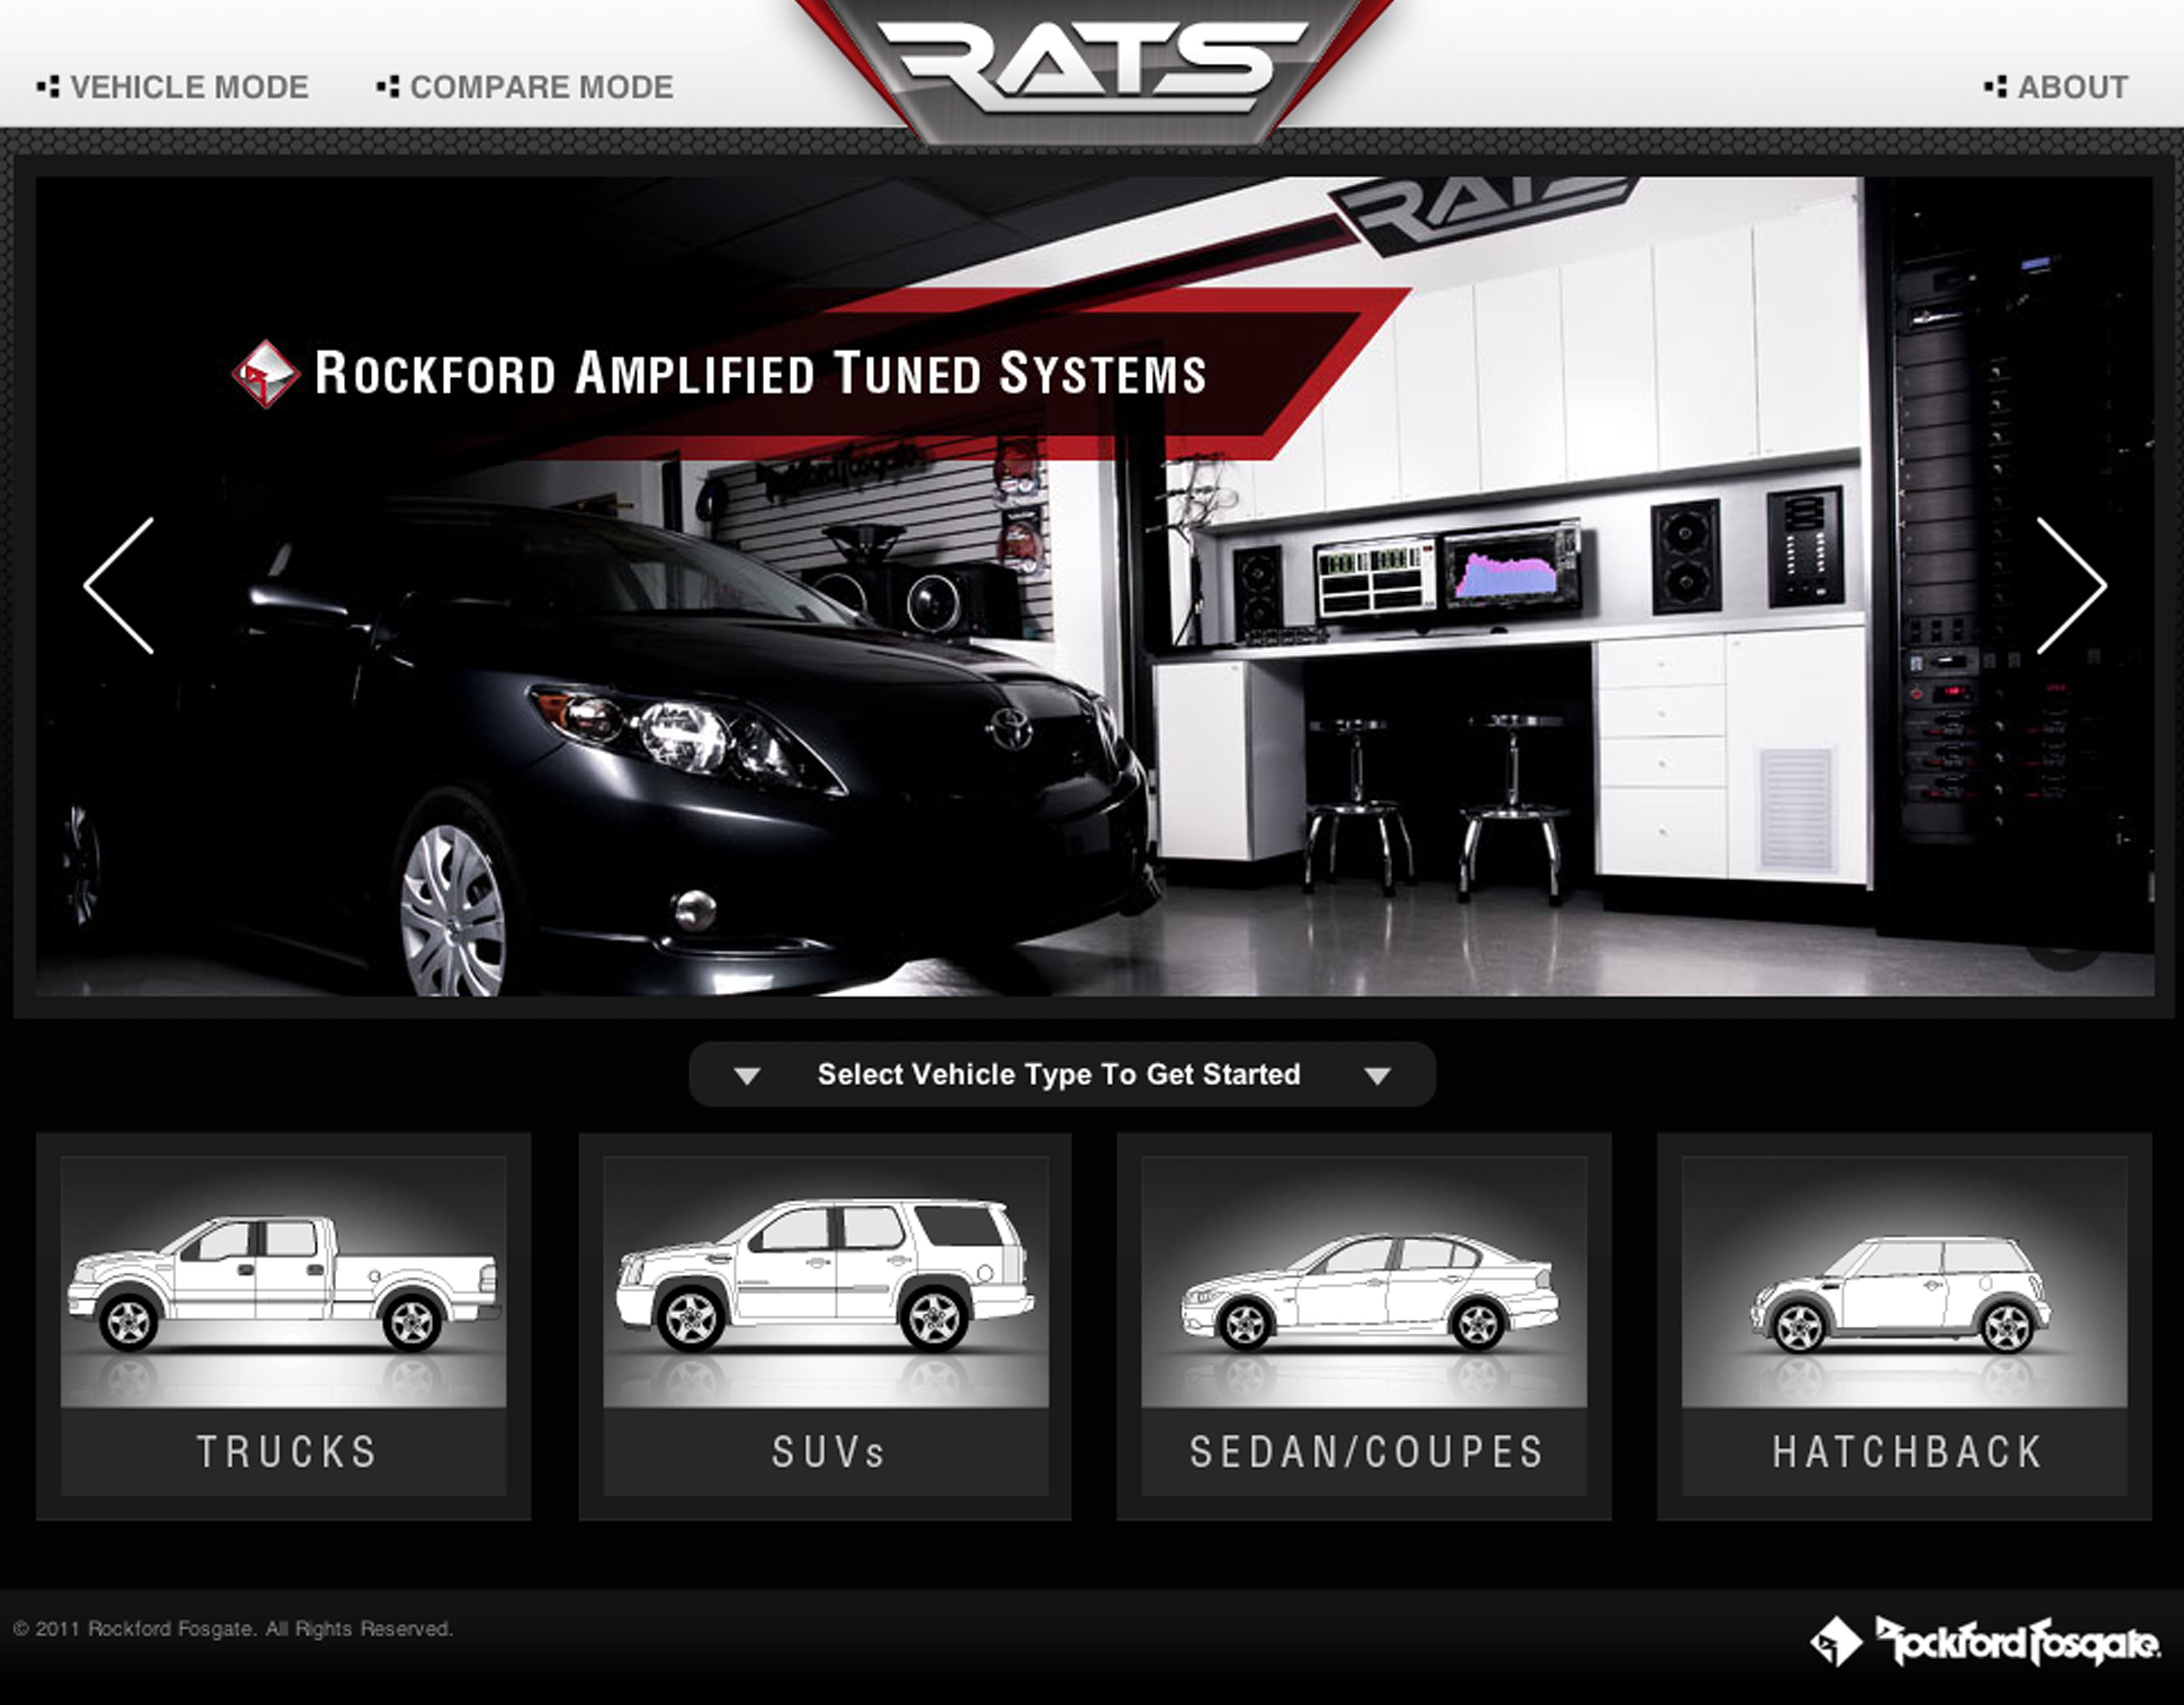 Rockford Fosgate Launches Rockford Amplified Tuned System (RATS) Online & Smartphone Installation Tool